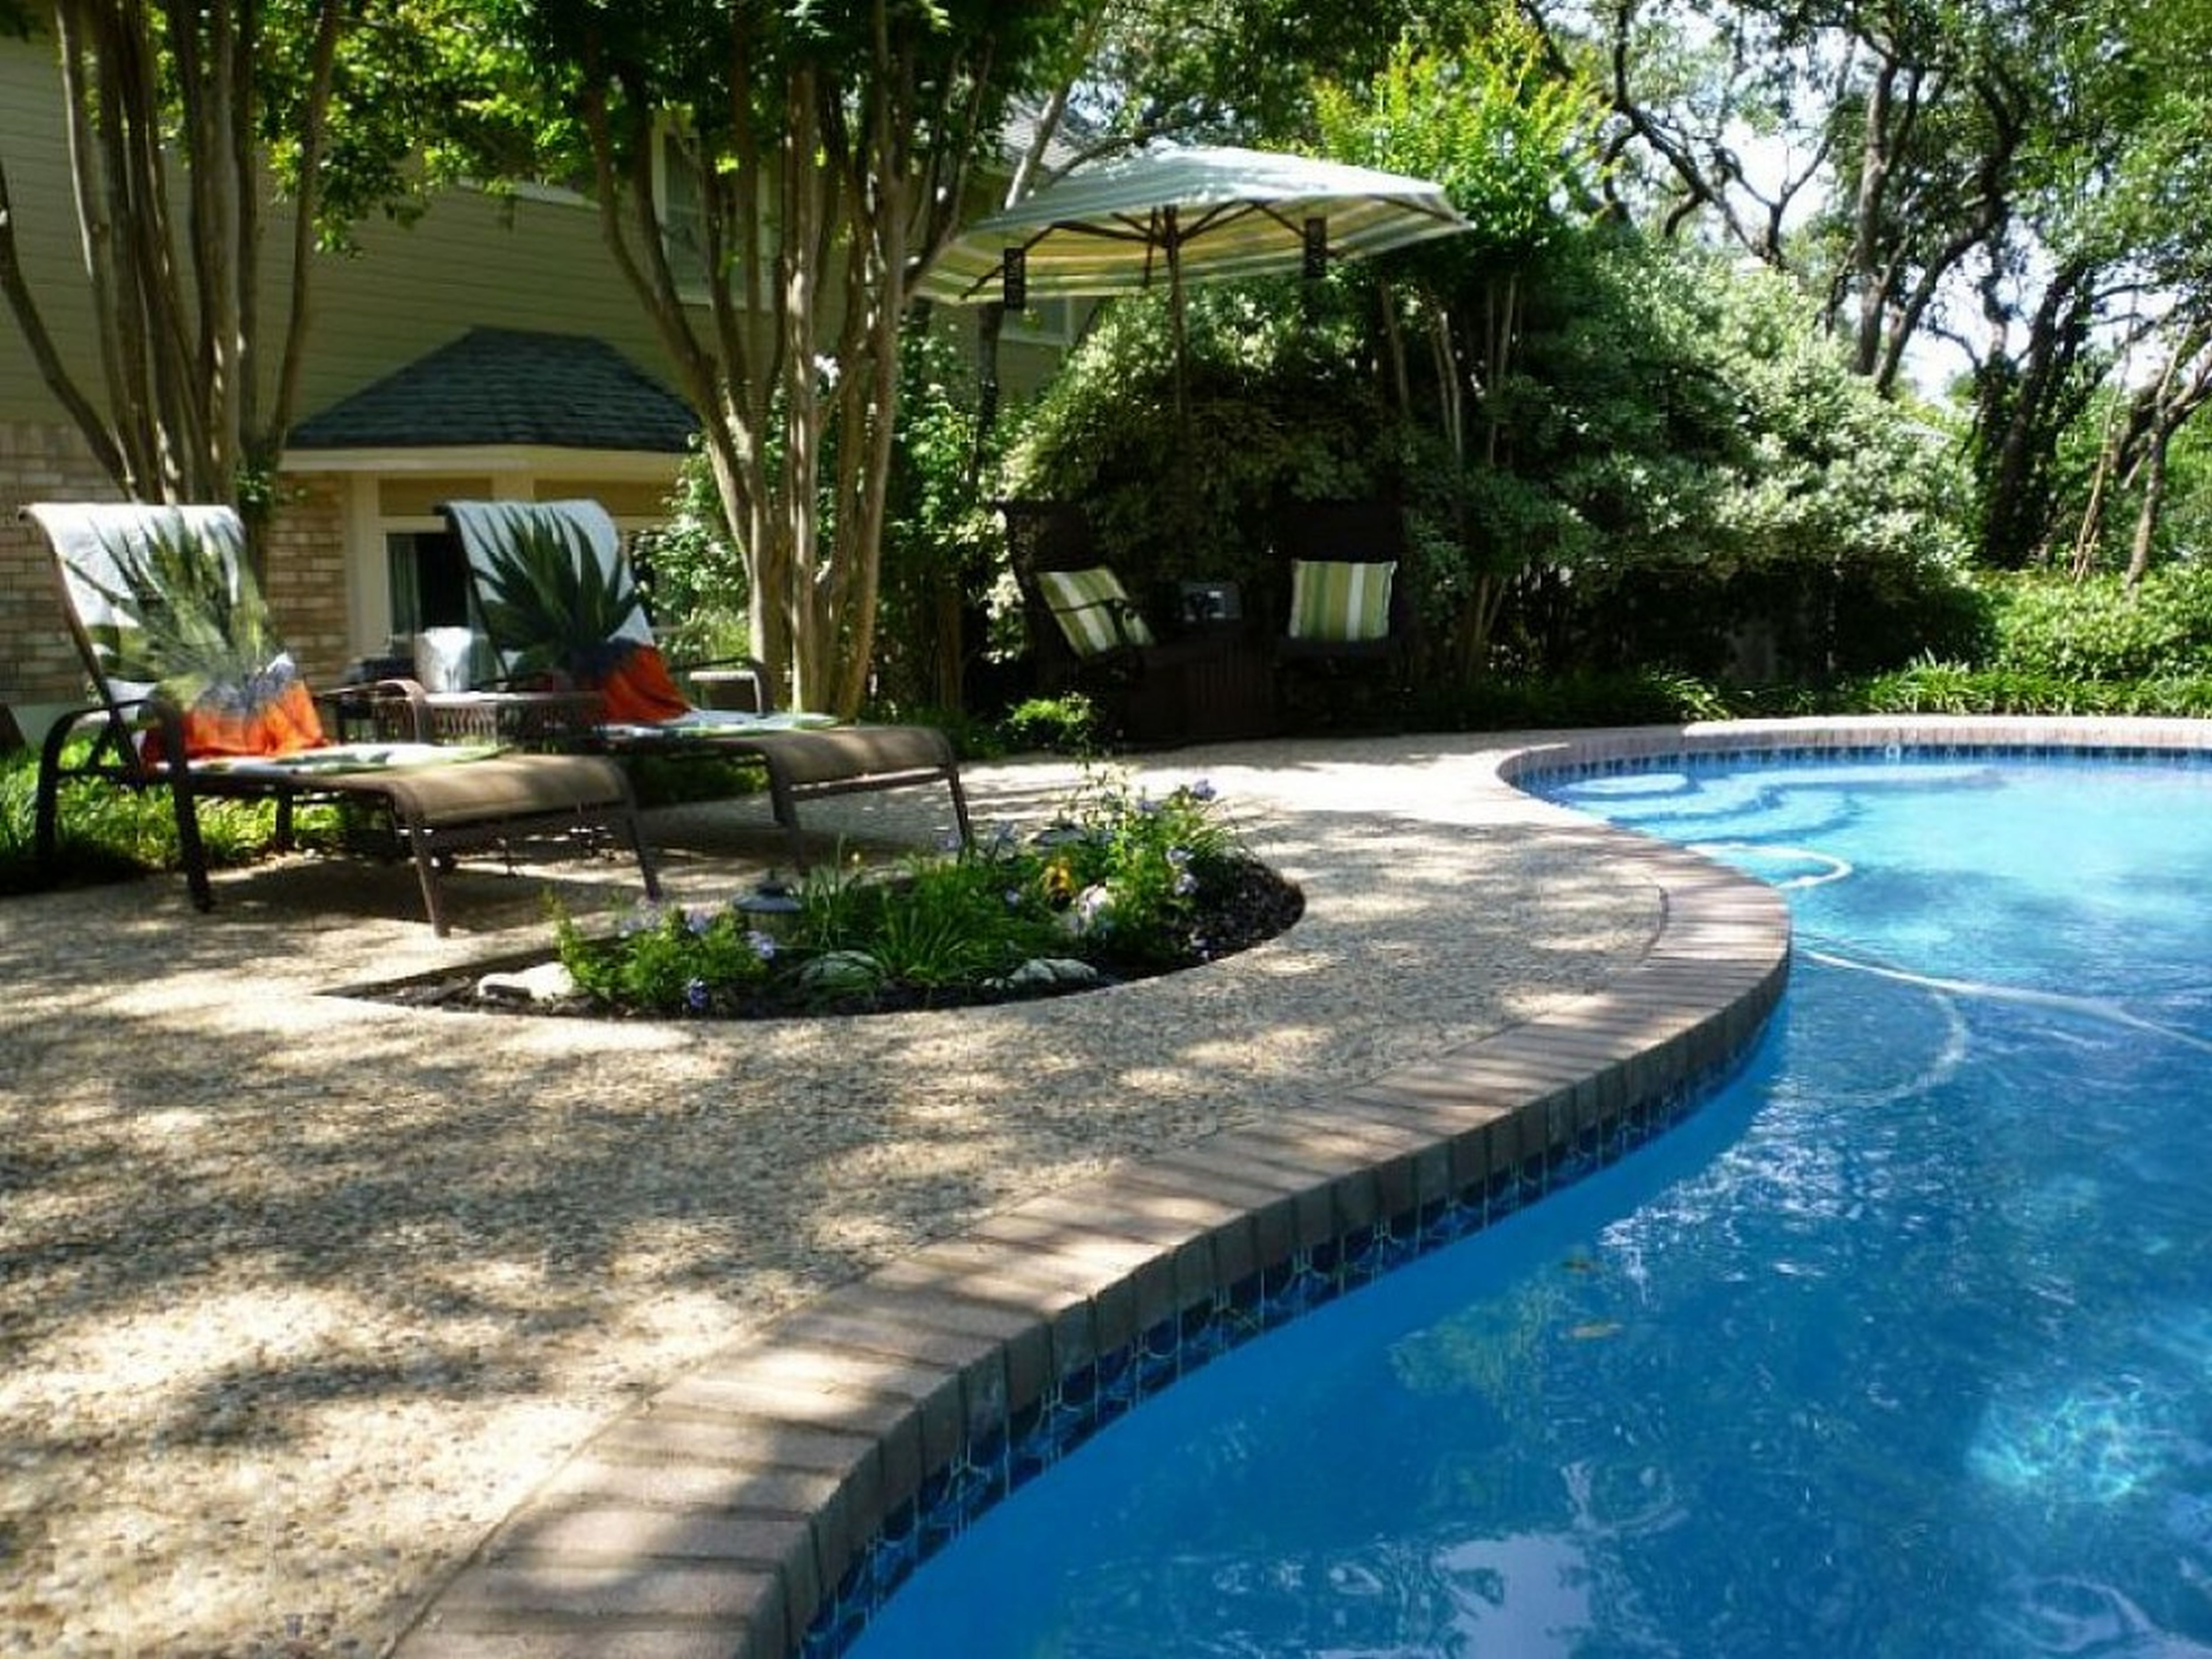 Outdoor design terrific backyard landscaping ideas with Great pool design ideas